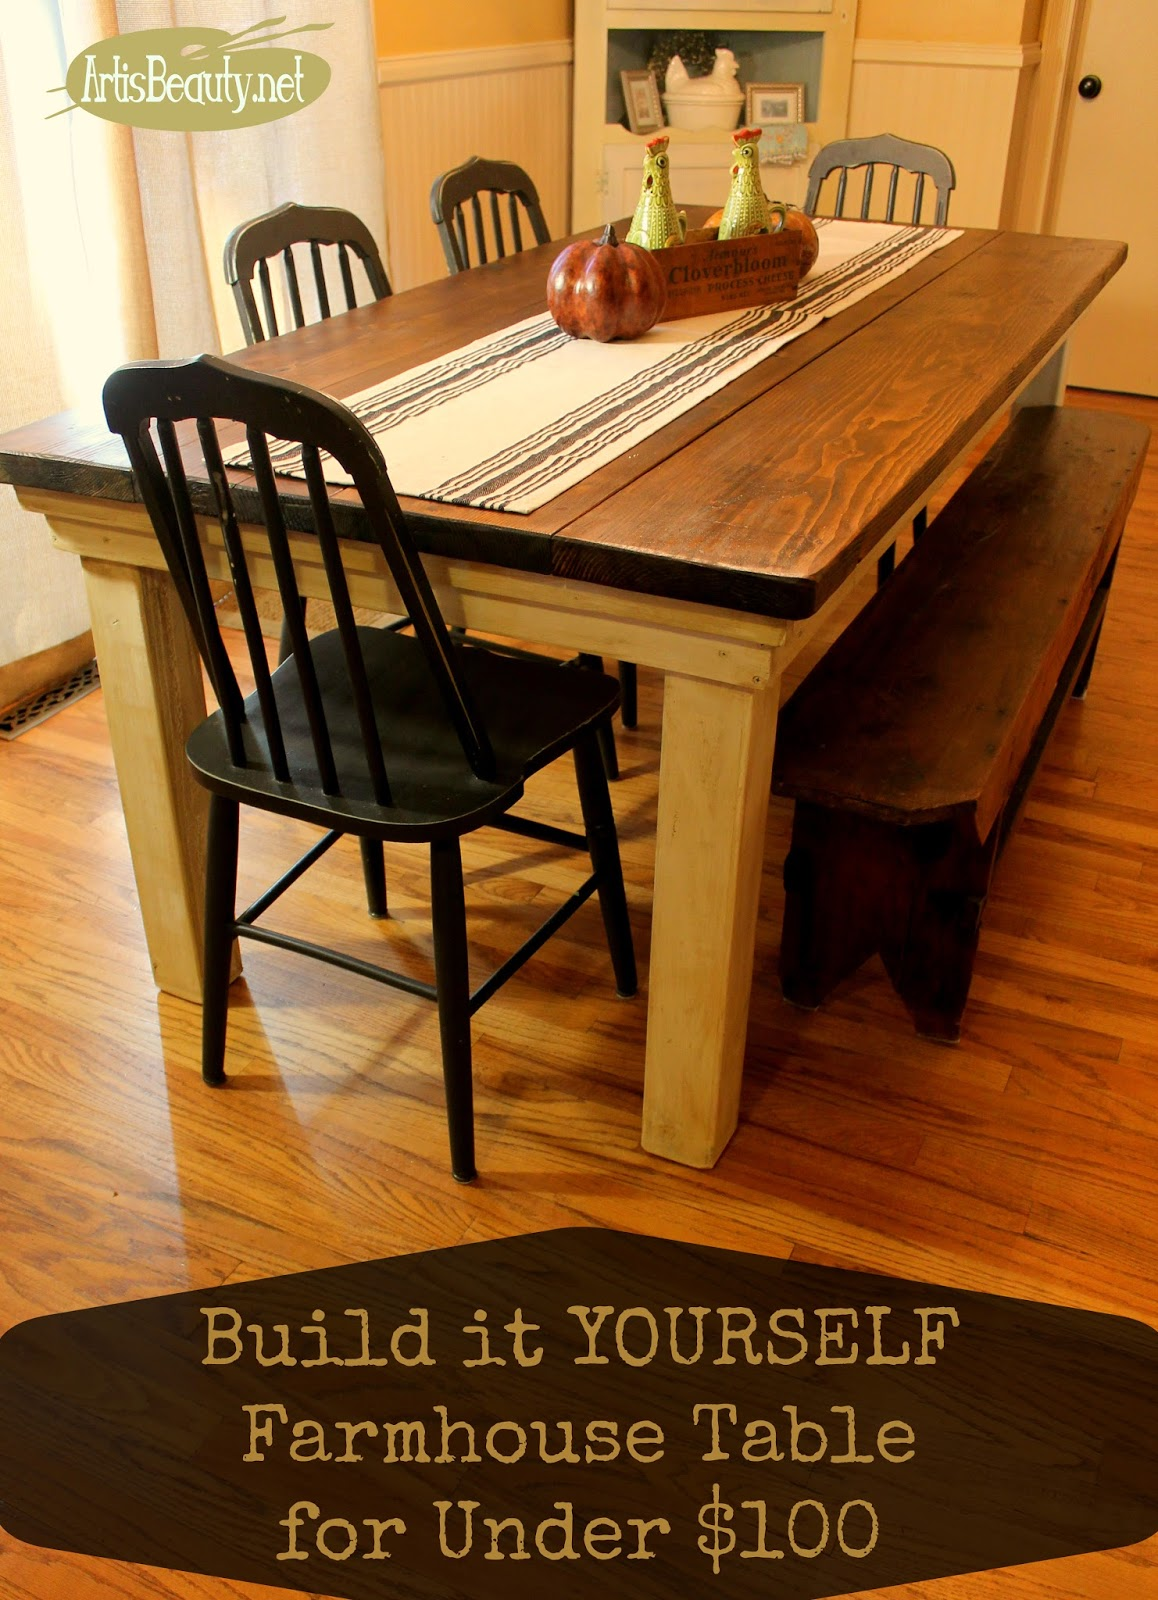 Art is beauty how to build your own farmhouse table for under 100 solutioingenieria